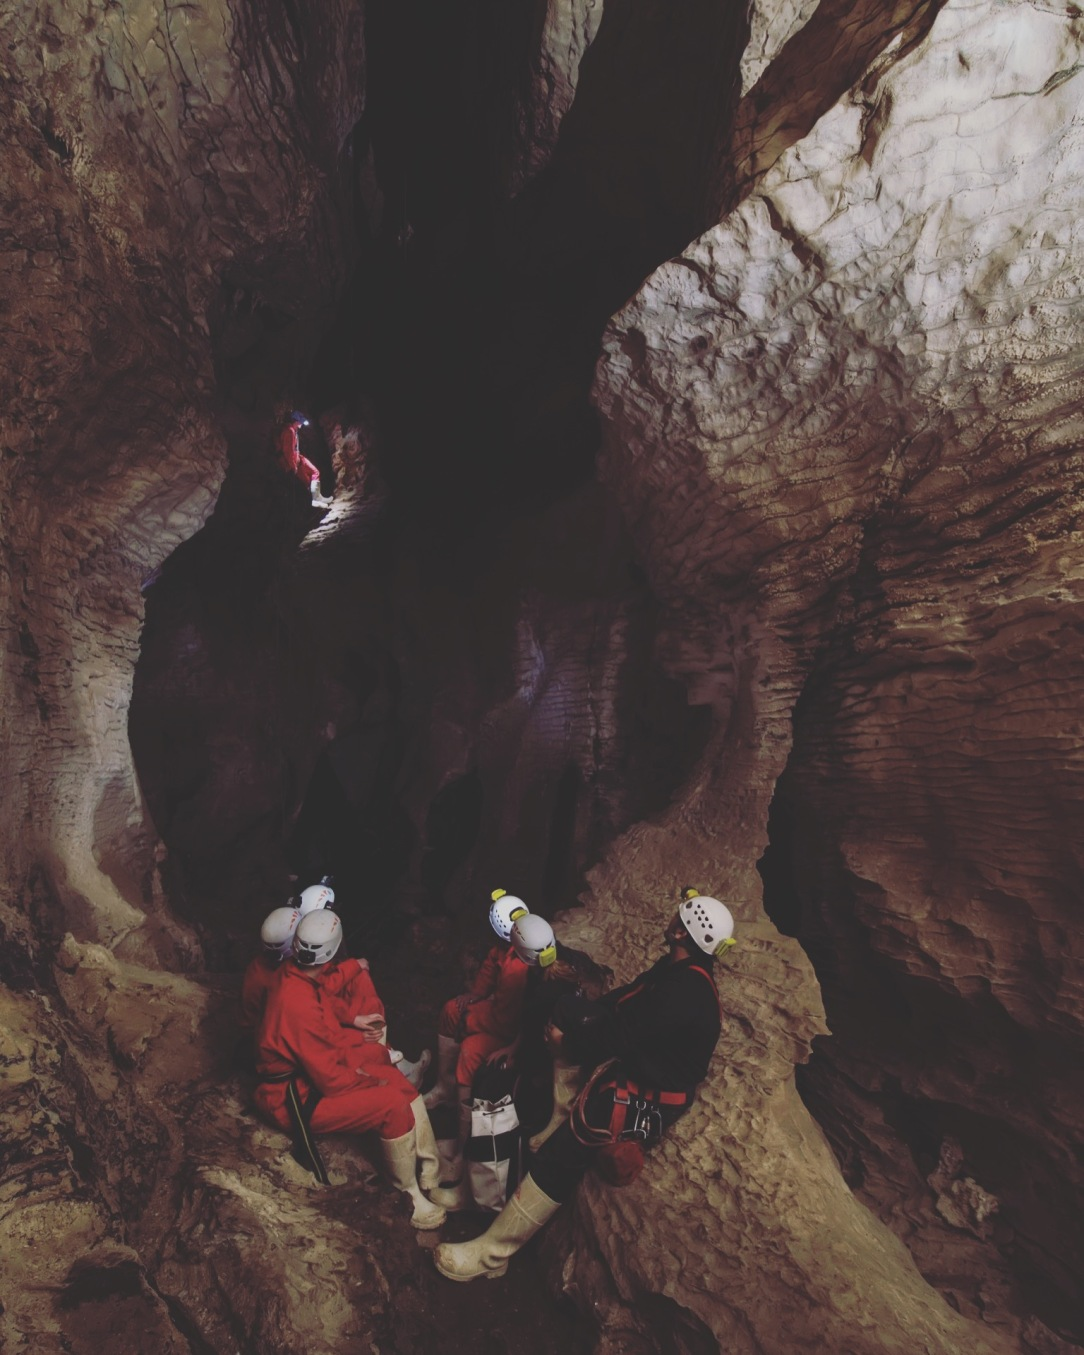 Waitomo Caves - The Black Odessey 6